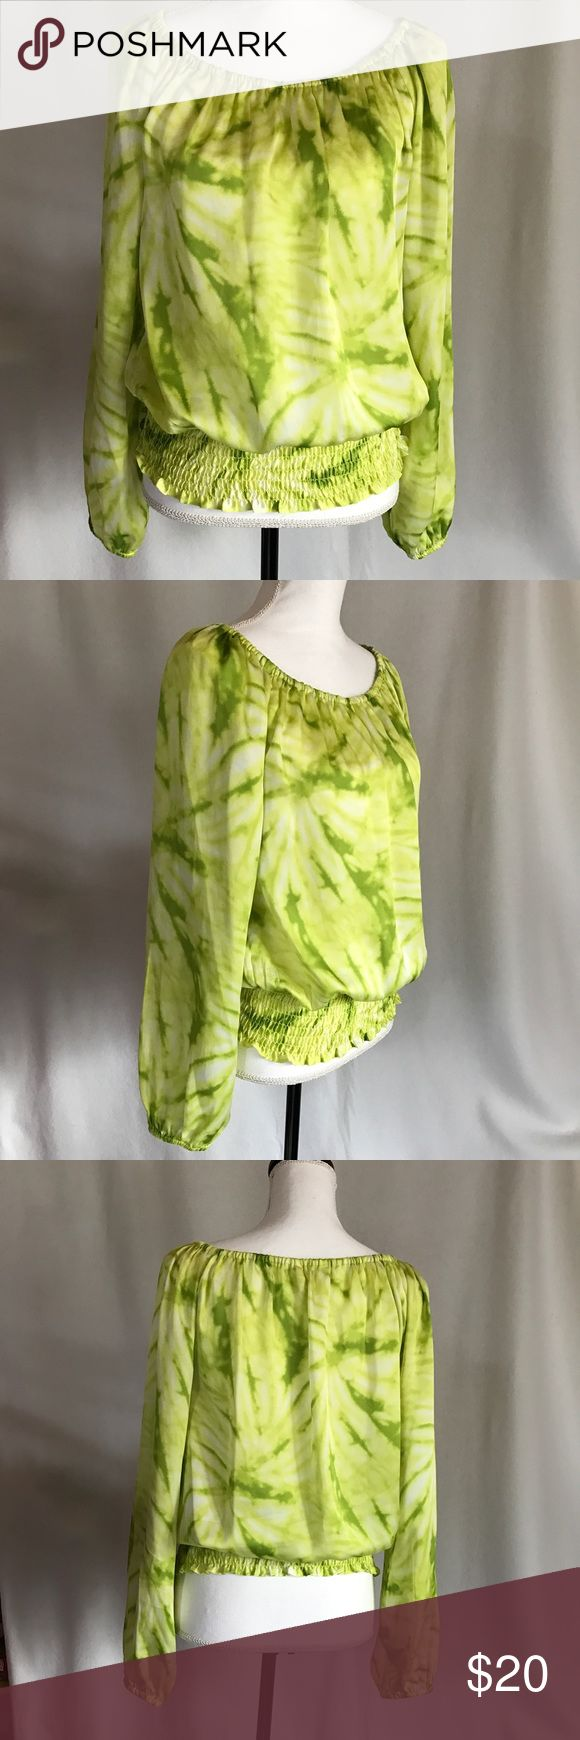 """Michael Kors Lemon Lime Silky Tie Dye Peasant Top Lightweight peasant top from Michael Kors. Soft silky feel fabric with tie dye watercolor print in shades of green and yellow.  Smocked elastic waist.  Wear on or off shoulder.  Elastic neck and cuffs. Long sleeve.  Size medium.  Pit to pit laying flat 22"""", length 23.5"""".    100% polyester. In excellent condition. MICHAEL Michael Kors Tops"""